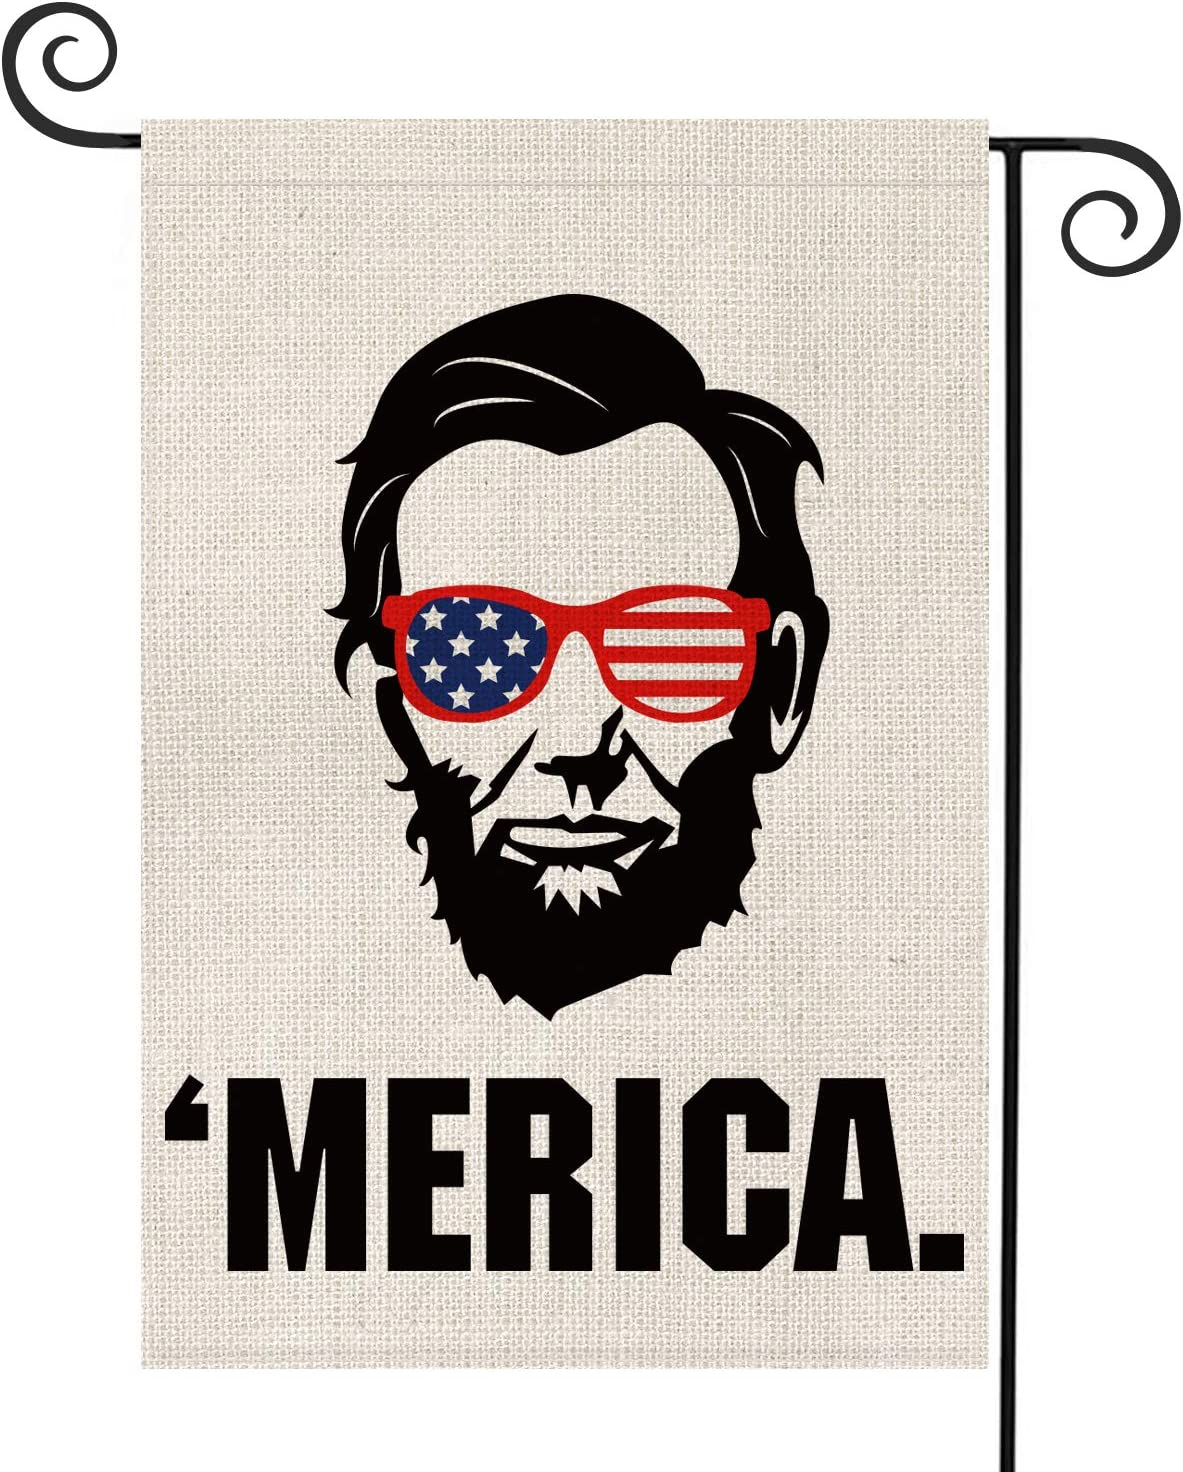 AVOIN President's Day Abraham Lincoln Merica Garden Flag Vertical Double Sided Patriotic Strip and Star, 4th of July Memorial Day Independence Day Yard Outdoor Decoration 12.5 x 18 Inch